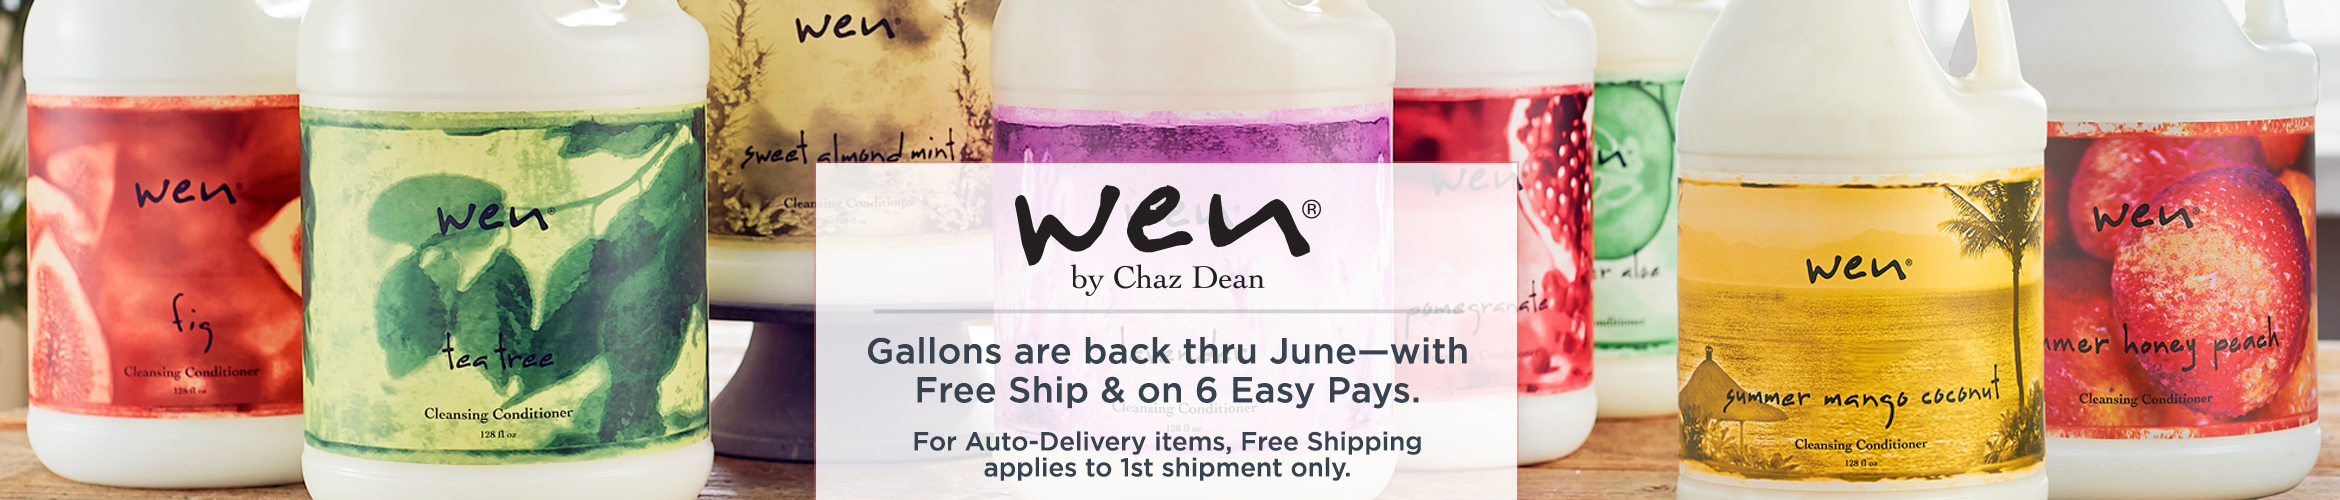 WEN by Chaz Dean. Gallons are back thru June—with Free Ship & on 6 Easy Pays. For Auto-Delivery items, Free Shipping applies to 1st shipment only.